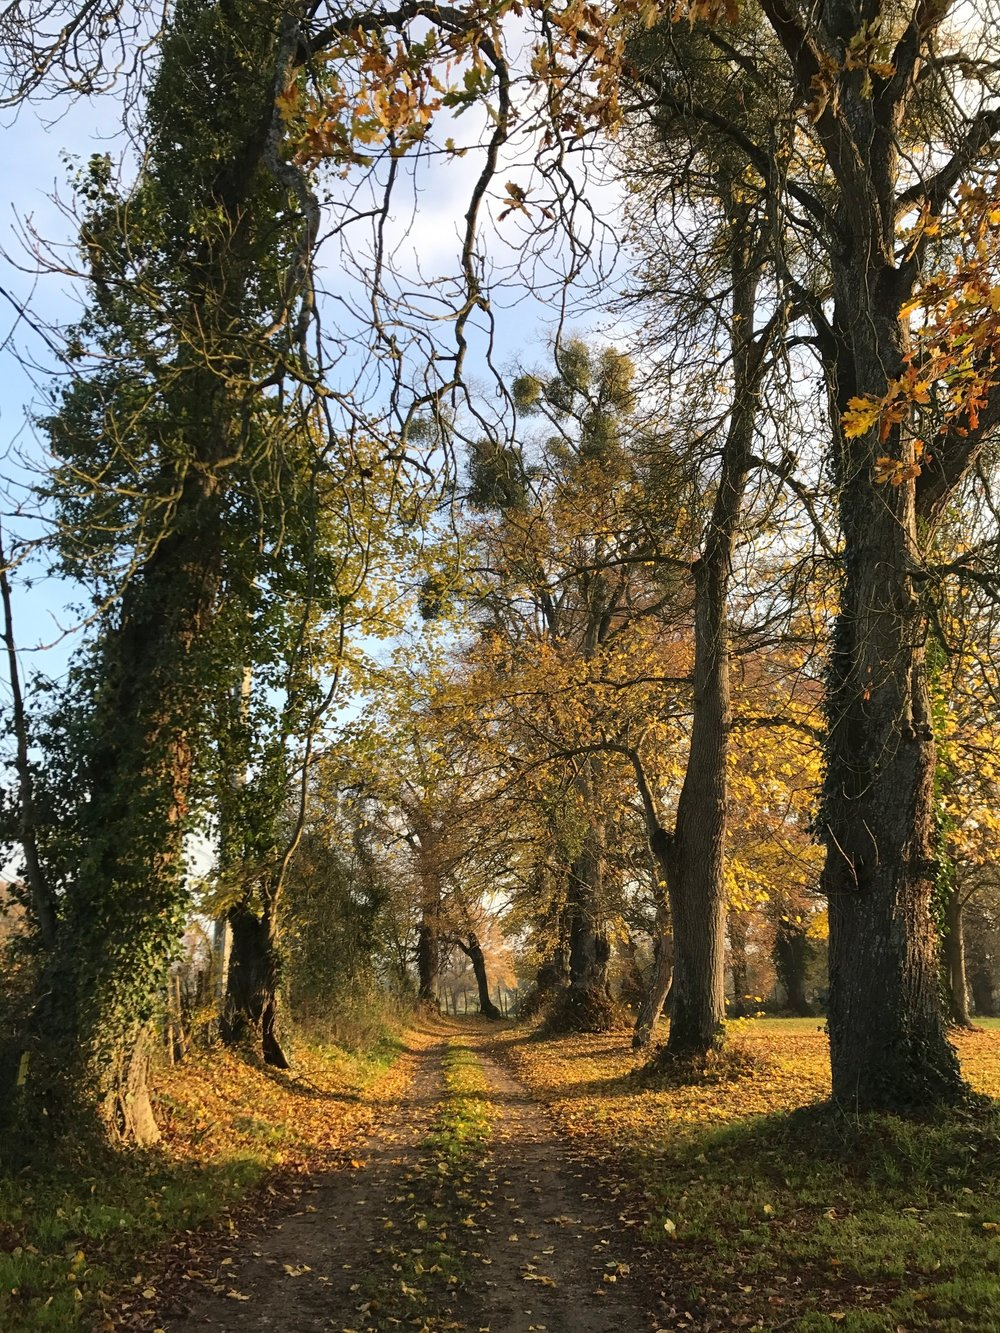 Autumn at Chateau de la Ruche